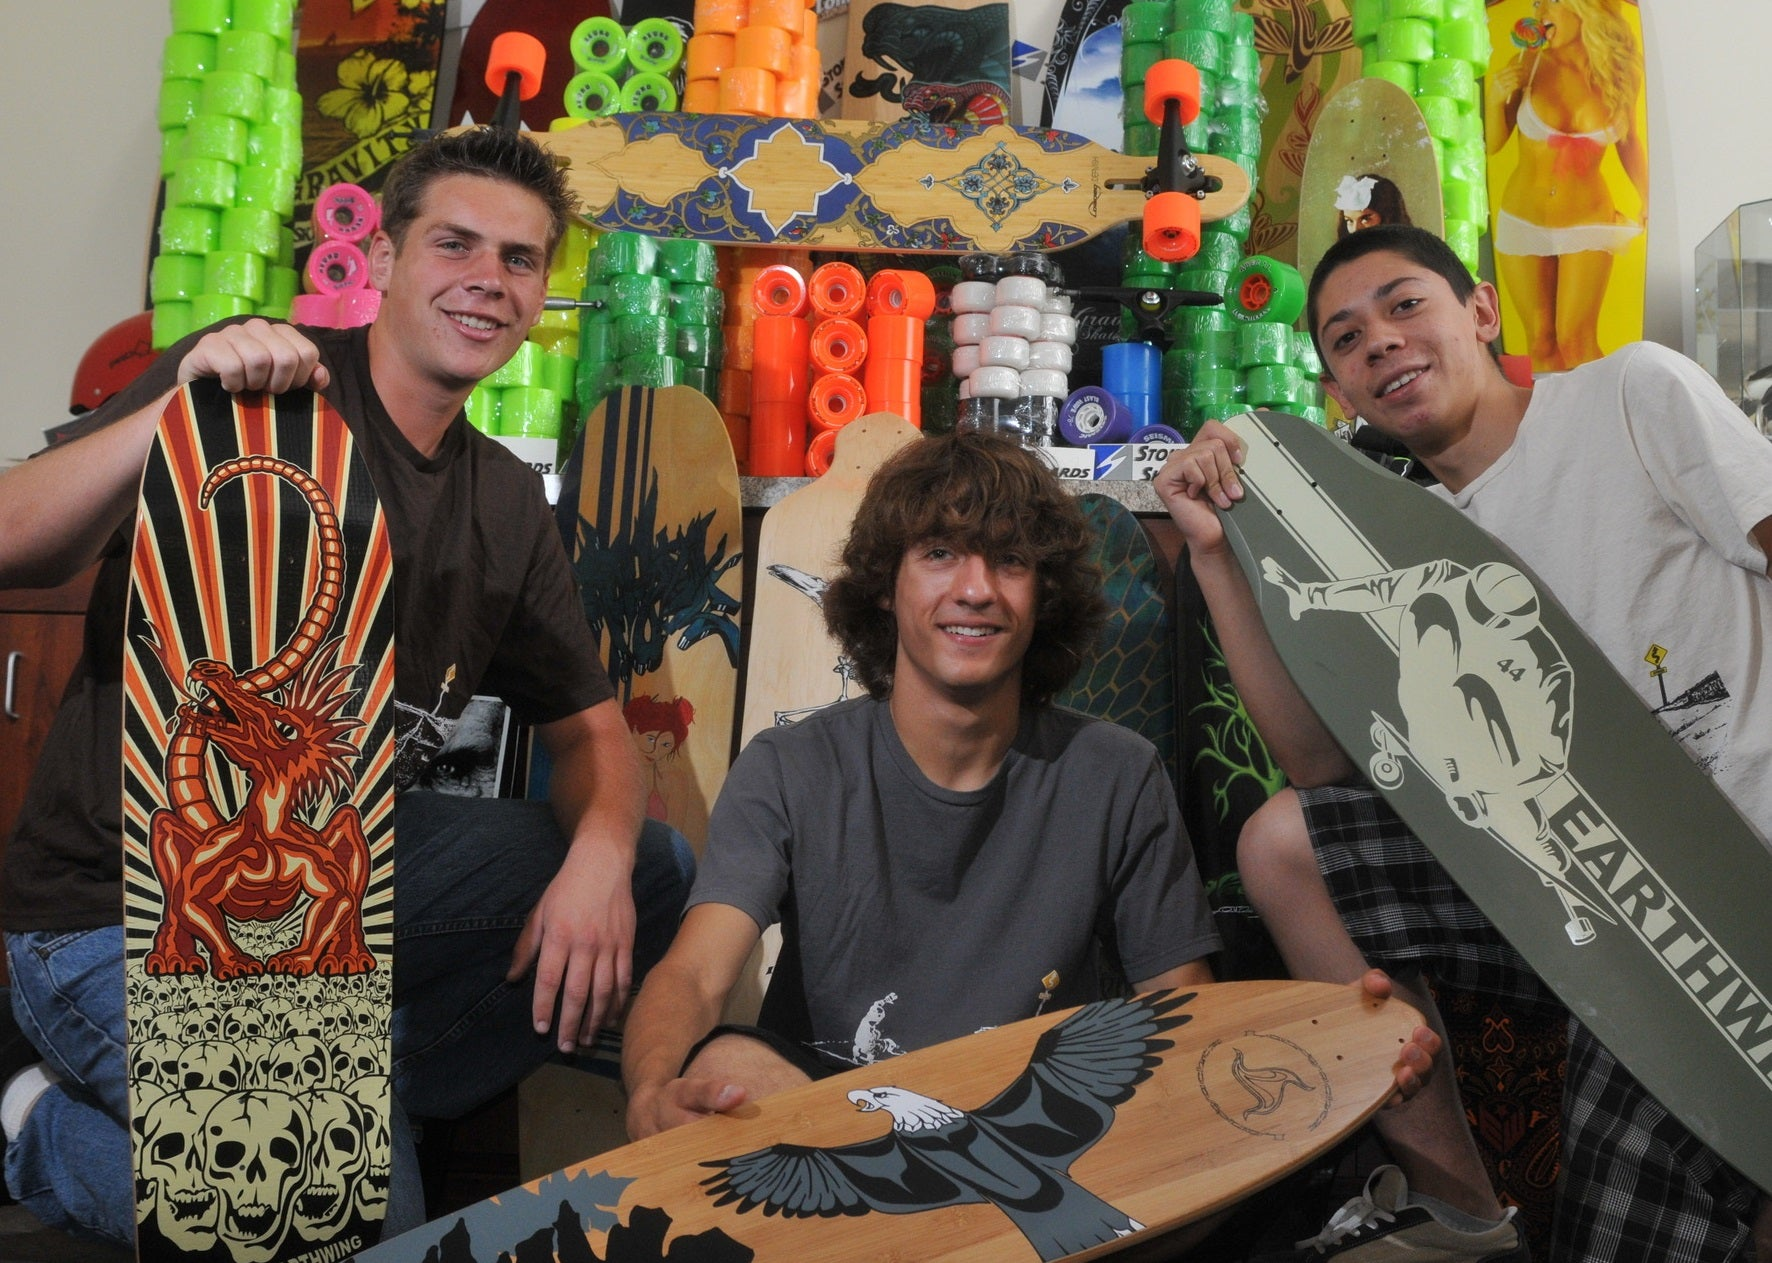 Stoked Skateboards Founding Trio